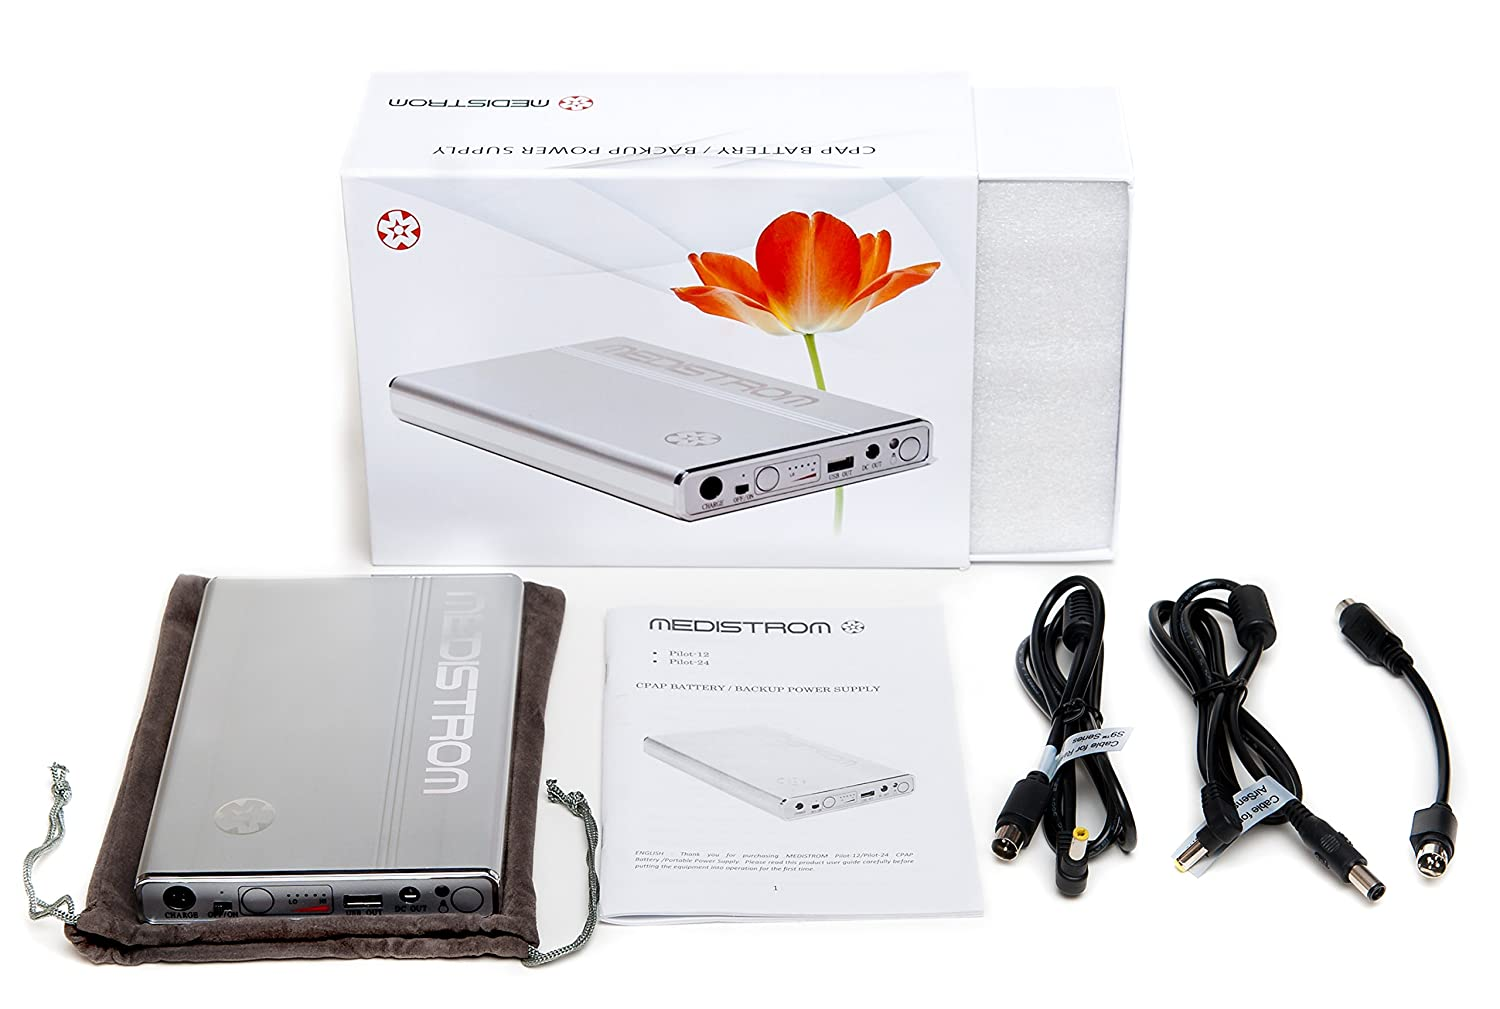 Pilot 24 Cpap Battery System Health Personal Care Pv With Backup Includes At Least One Circuit